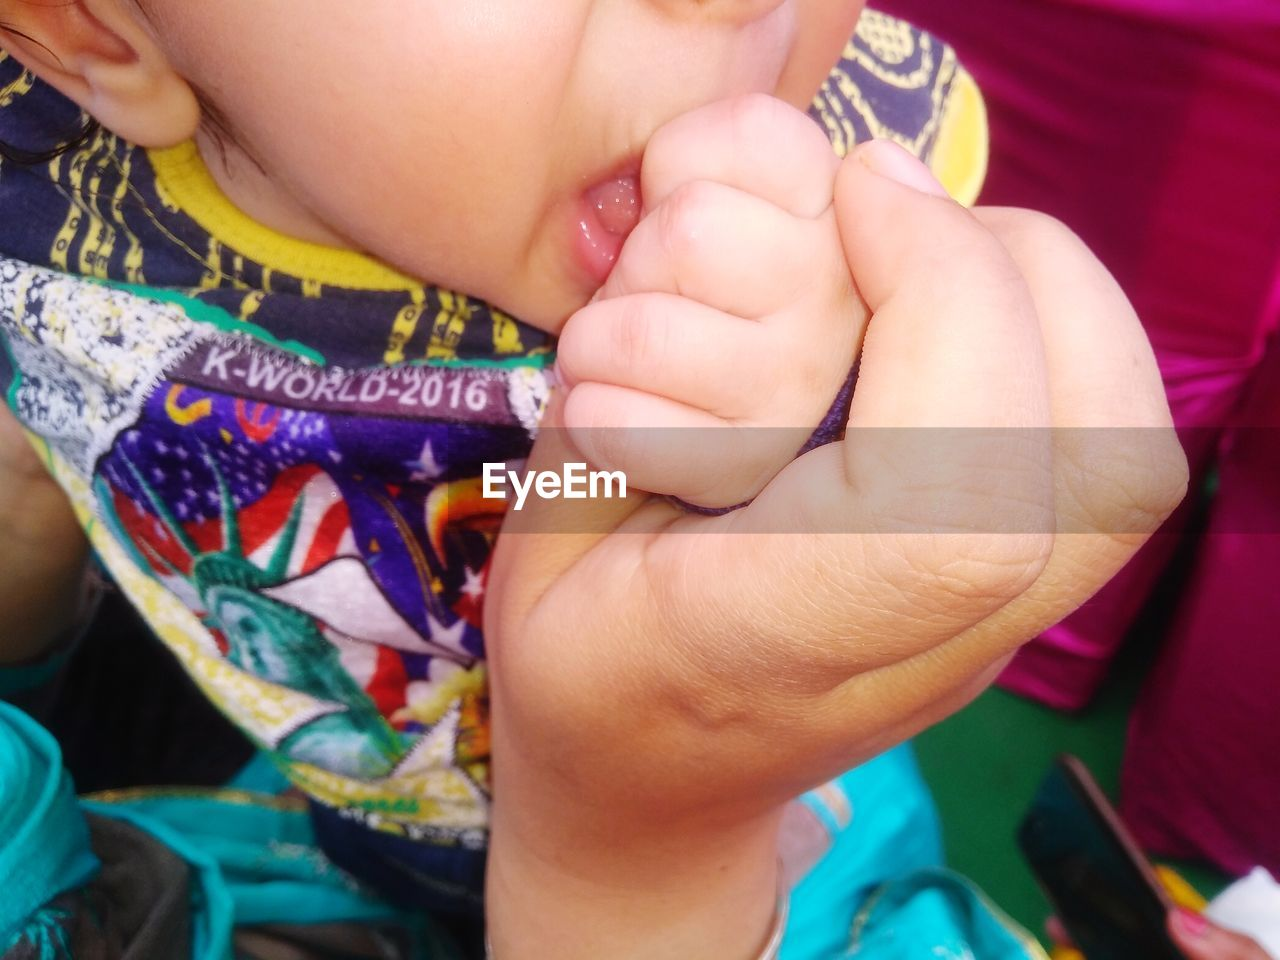 real people, human hand, women, human body part, hand, child, childhood, two people, close-up, midsection, lifestyles, people, family, body part, adult, females, bonding, baby, focus on foreground, togetherness, positive emotion, finger, innocence